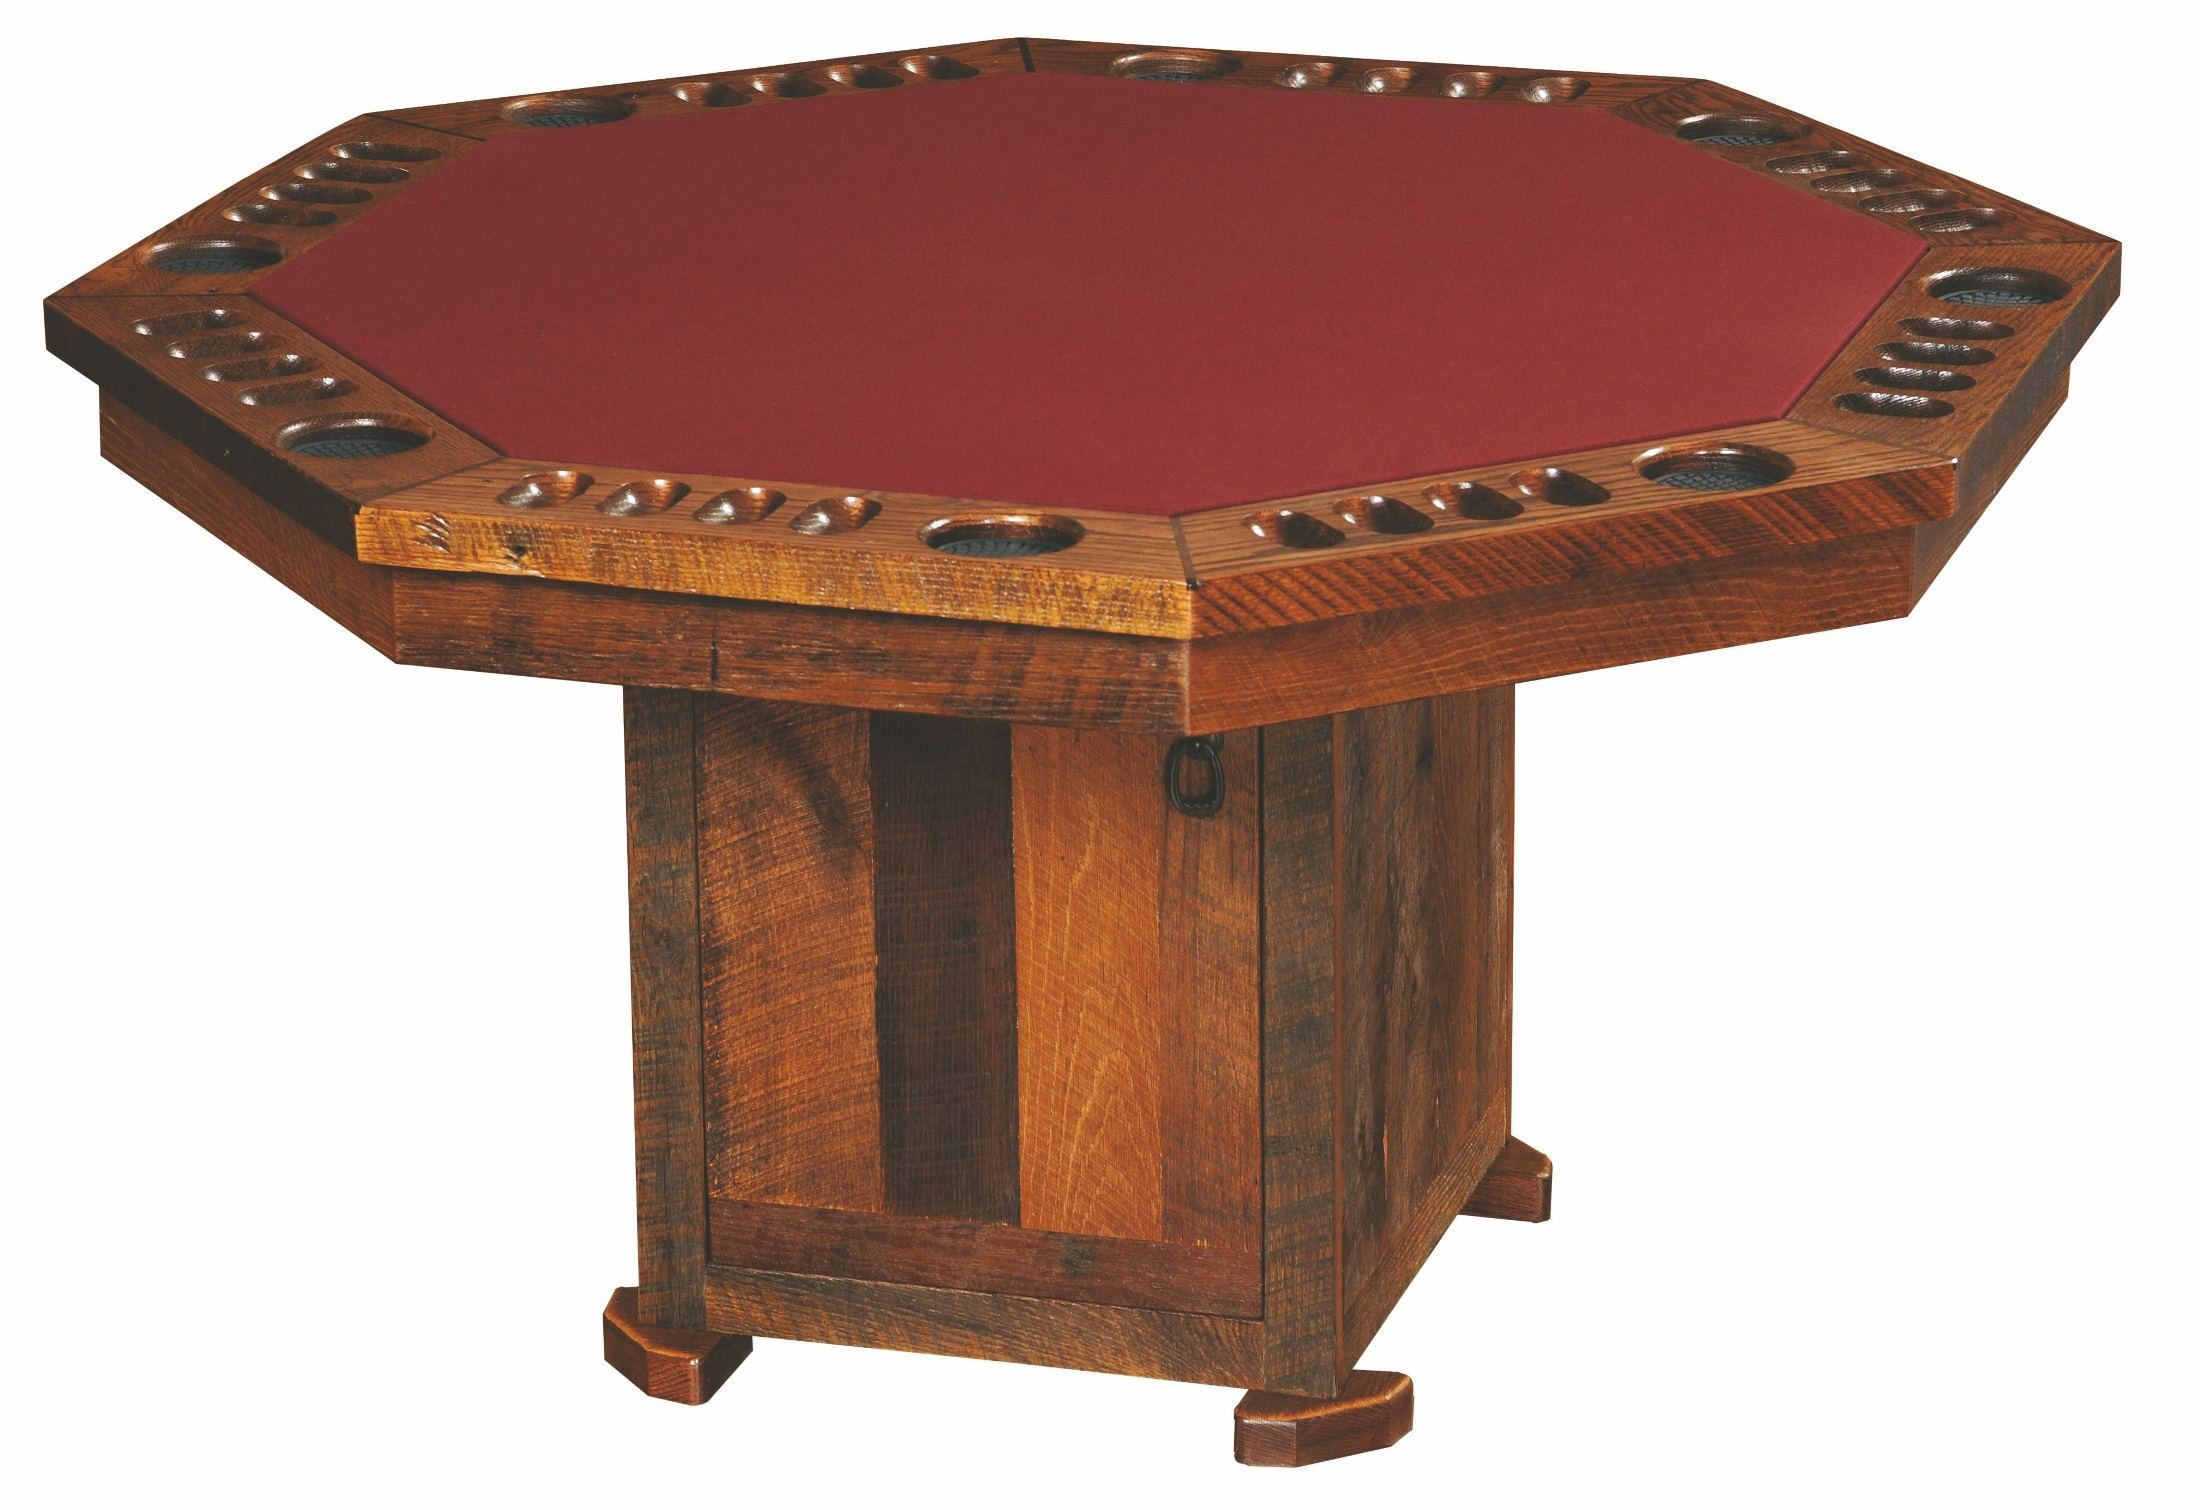 barnwood sided poker table from fireside lodge coleman closed doors accent clear bedside lamps desk furniture dale tiffany lamp high gloss side black wood lucite and brass